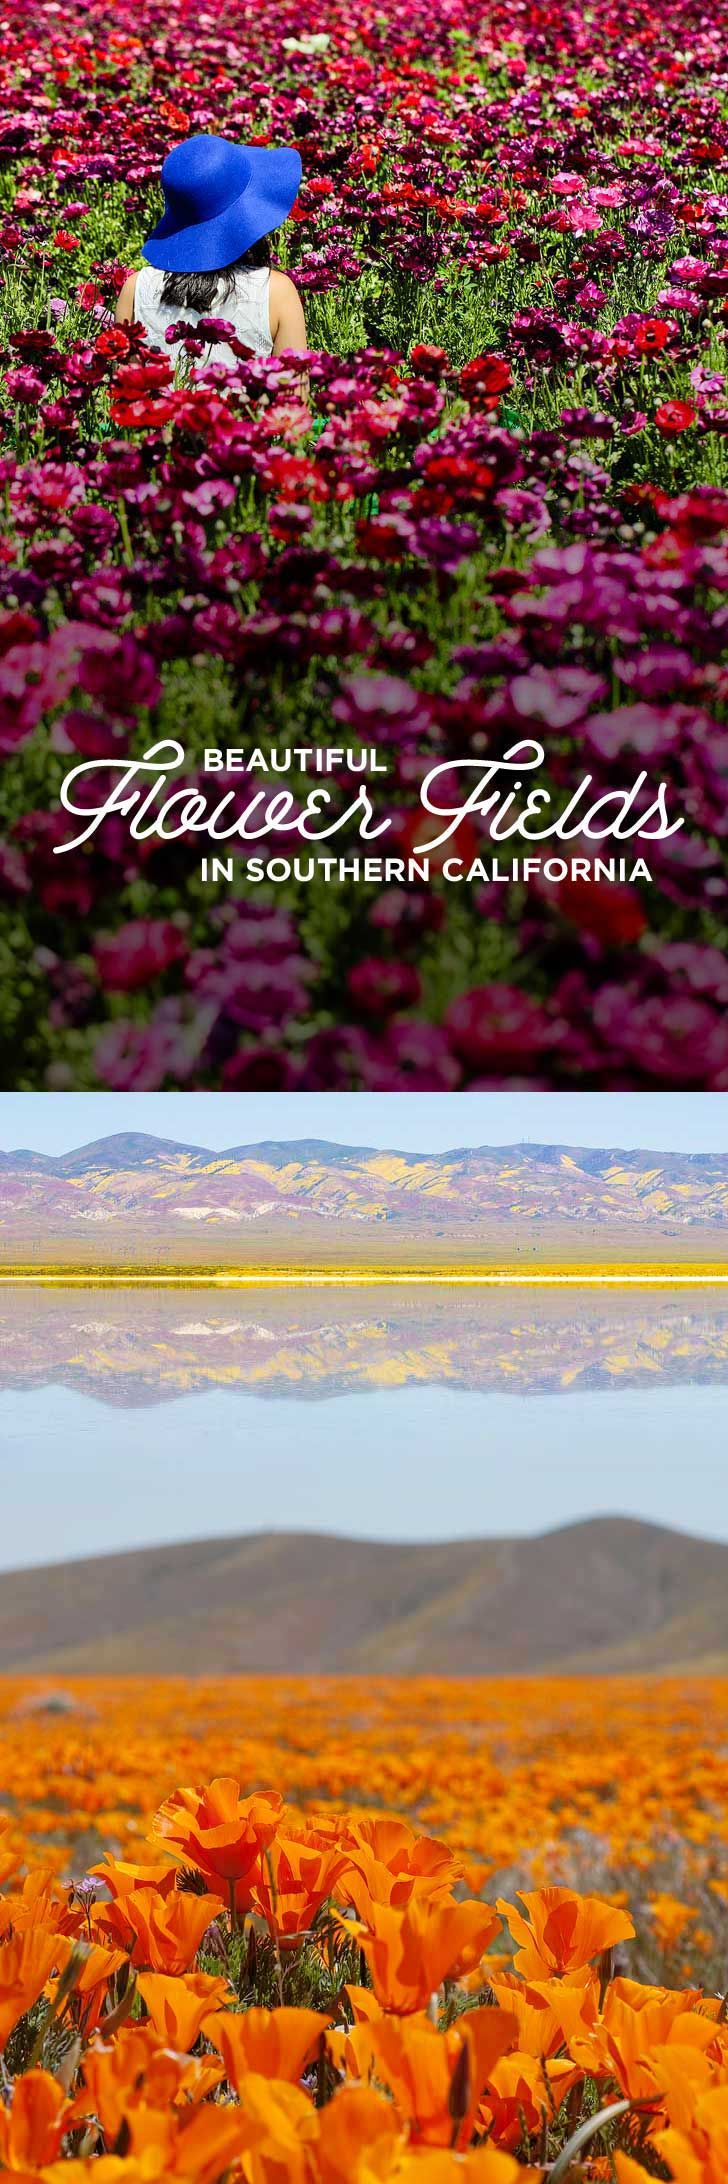 11 Beautiful Southern California Flower Fields You Must Visit This Spring - Where to Look for Wildflowers // Local Adventurer #california #travelblog #wildflowers